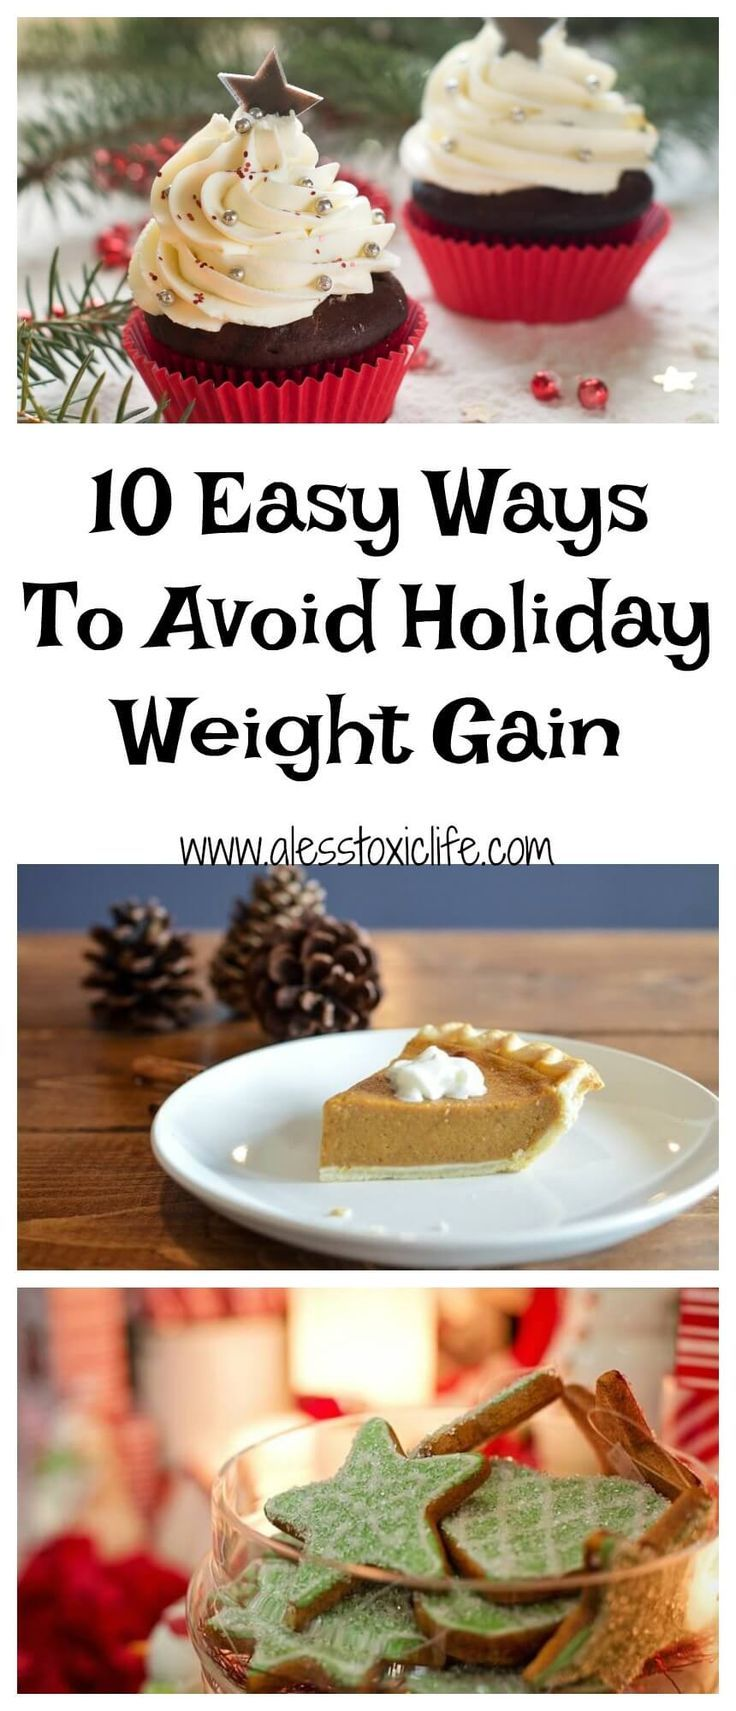 10 easy ways to avoid holiday weight gain weight gain gain and 10 easy ways to avoid holiday weight gain weight gain gain and weight loss forumfinder Gallery